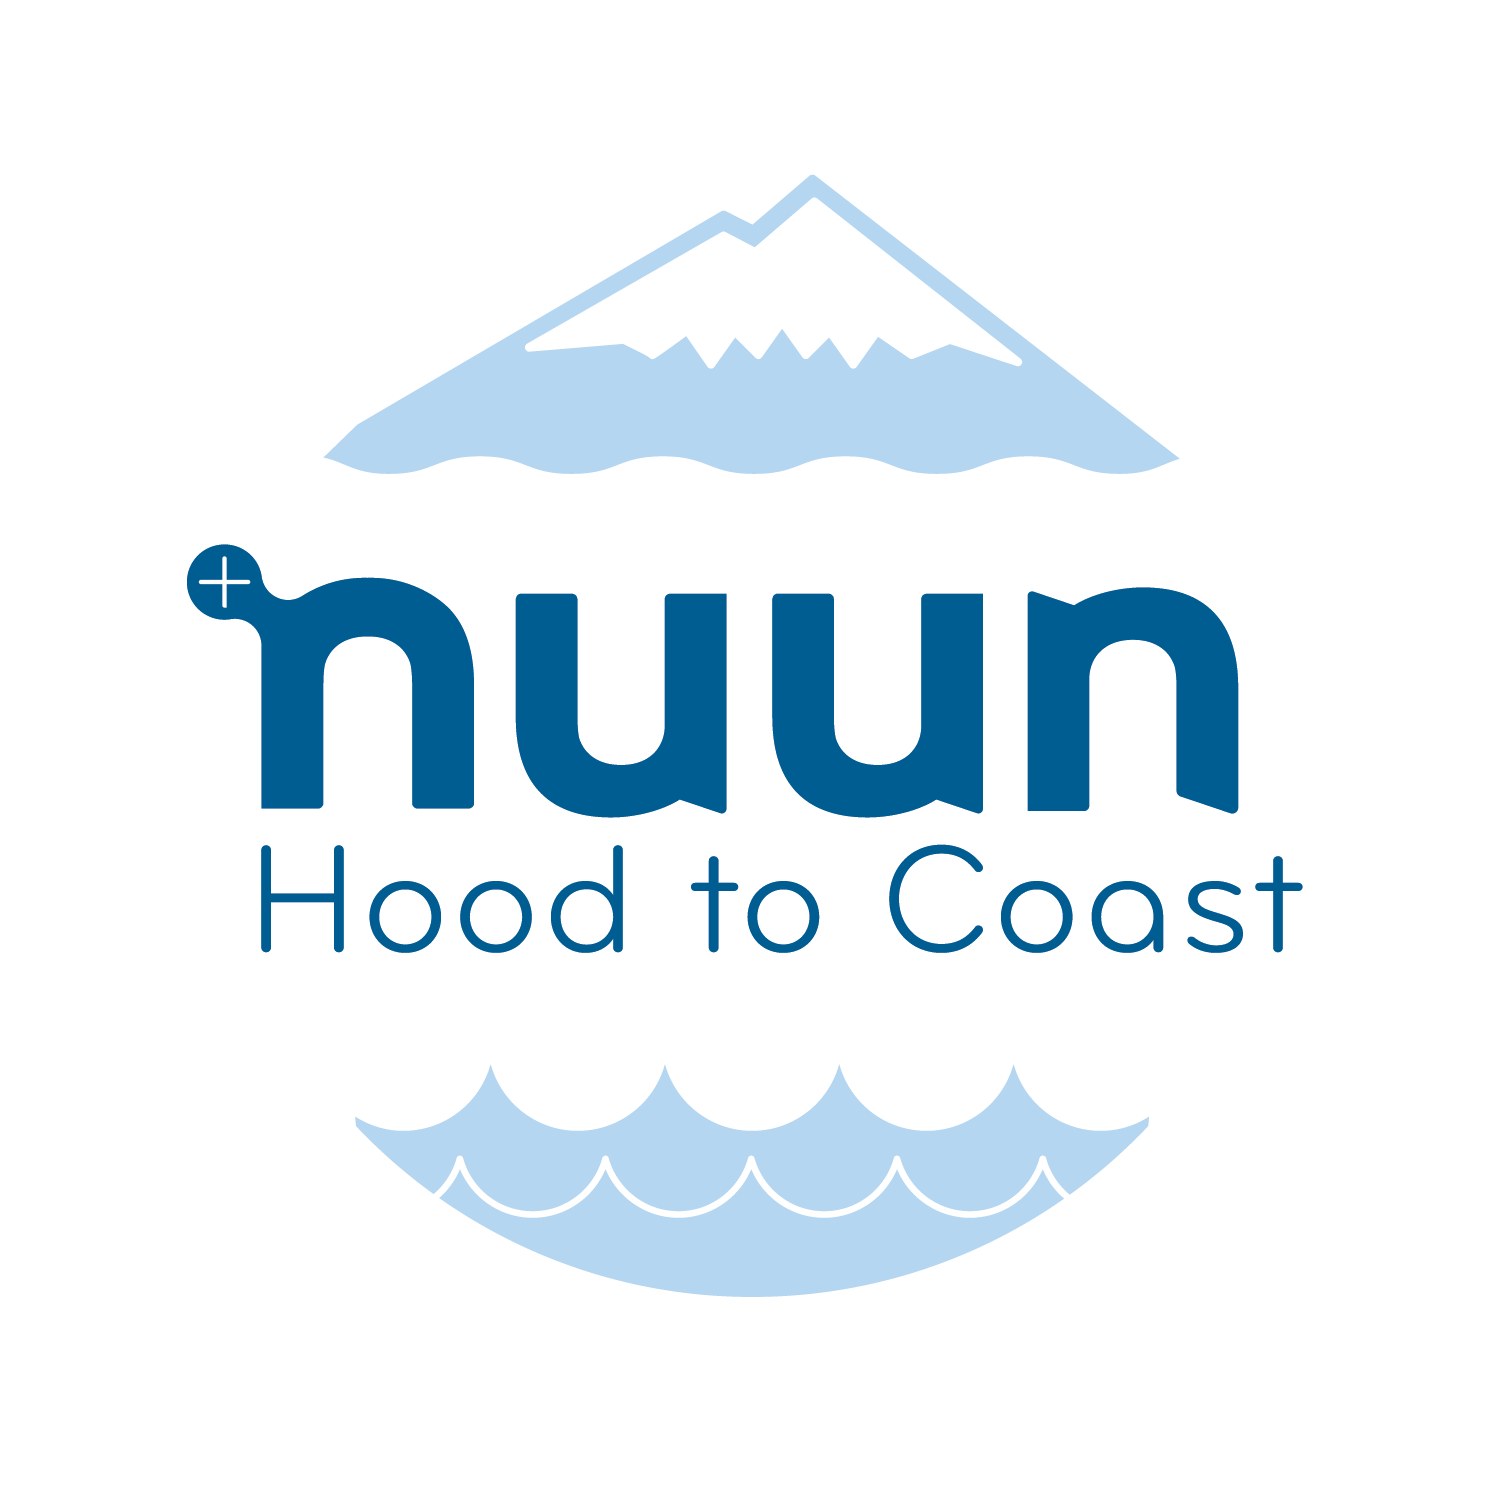 2014 Nuun Hood to Coast